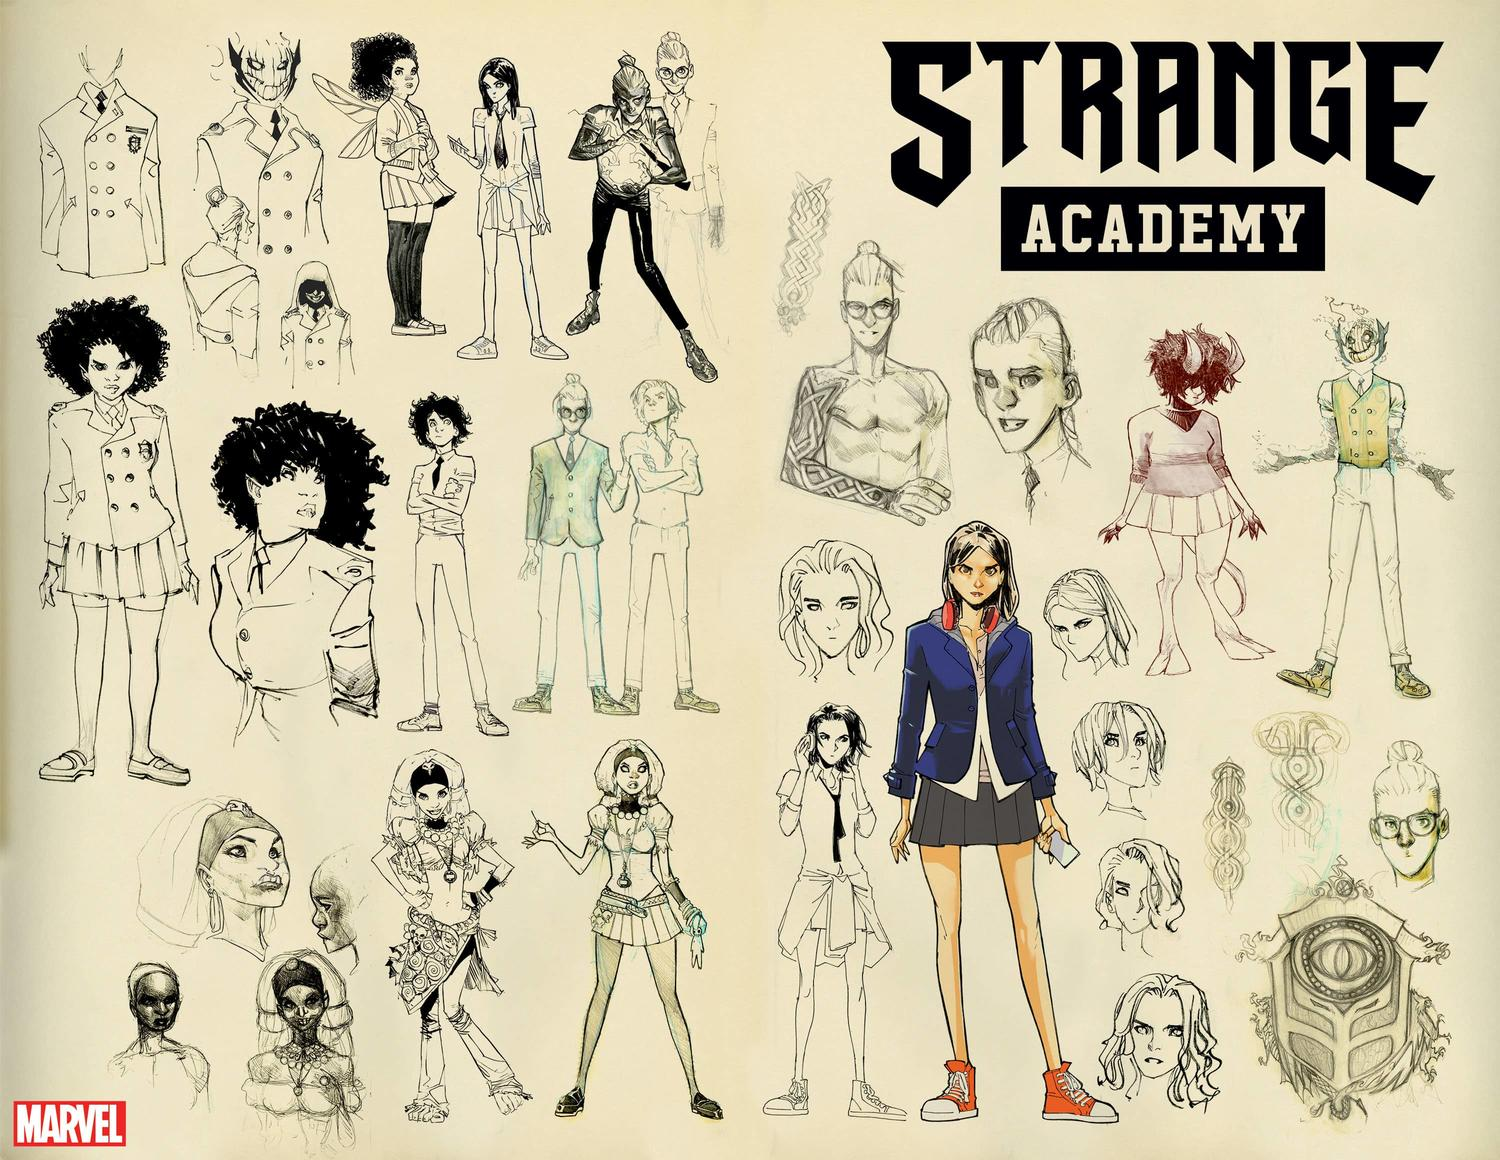 Strange Academy character designs by Humberto Ramos